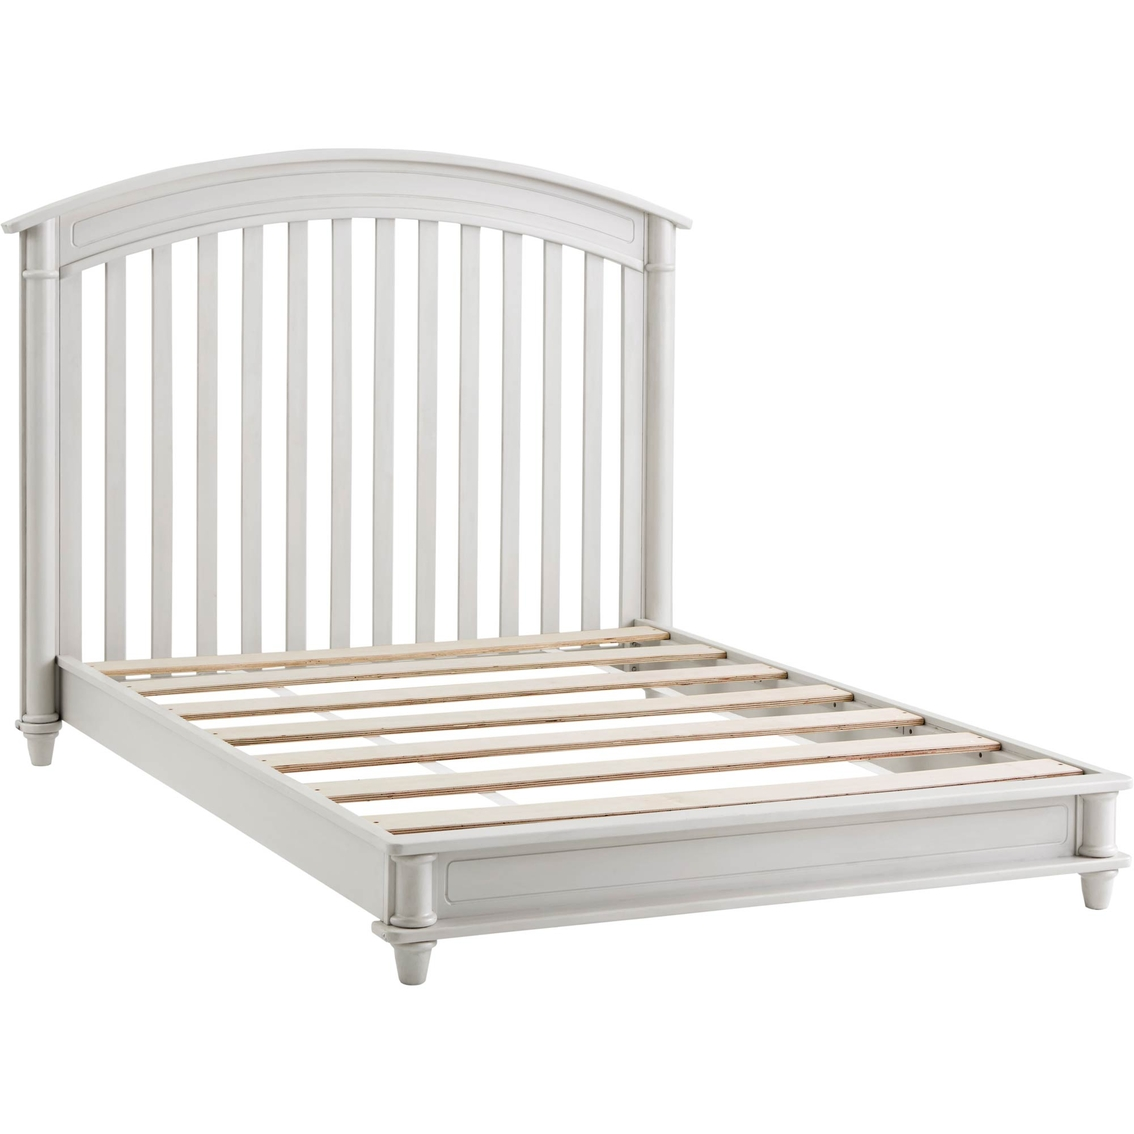 Mira studios sienna convertible crib full size bed rail for Cradle bed for adults